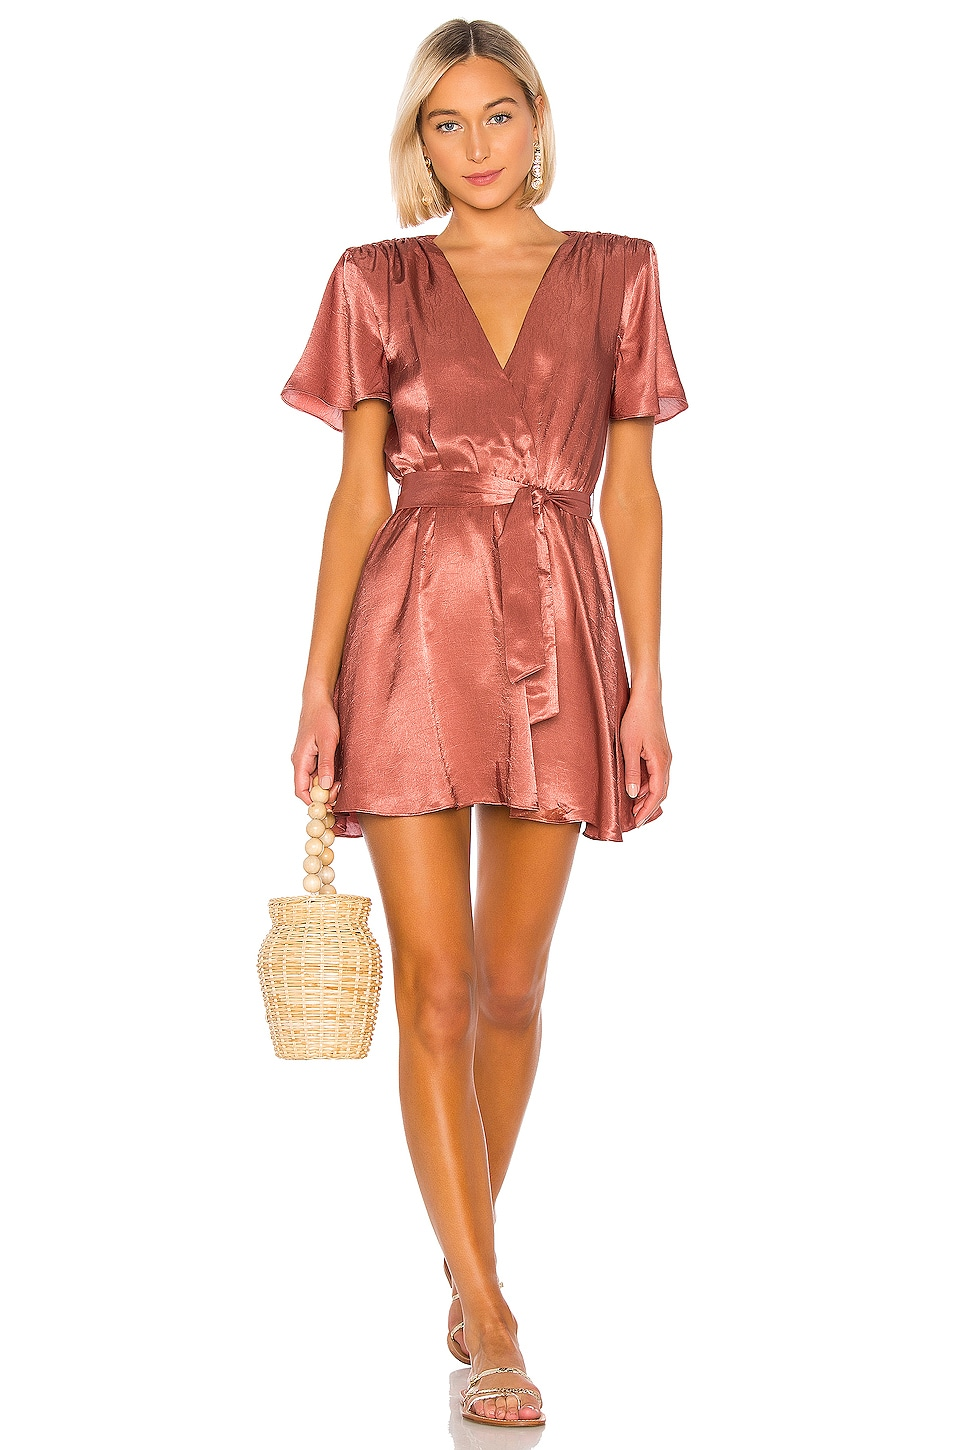 House of Harlow 1960 X REVOLVE Annika Dress in Copper